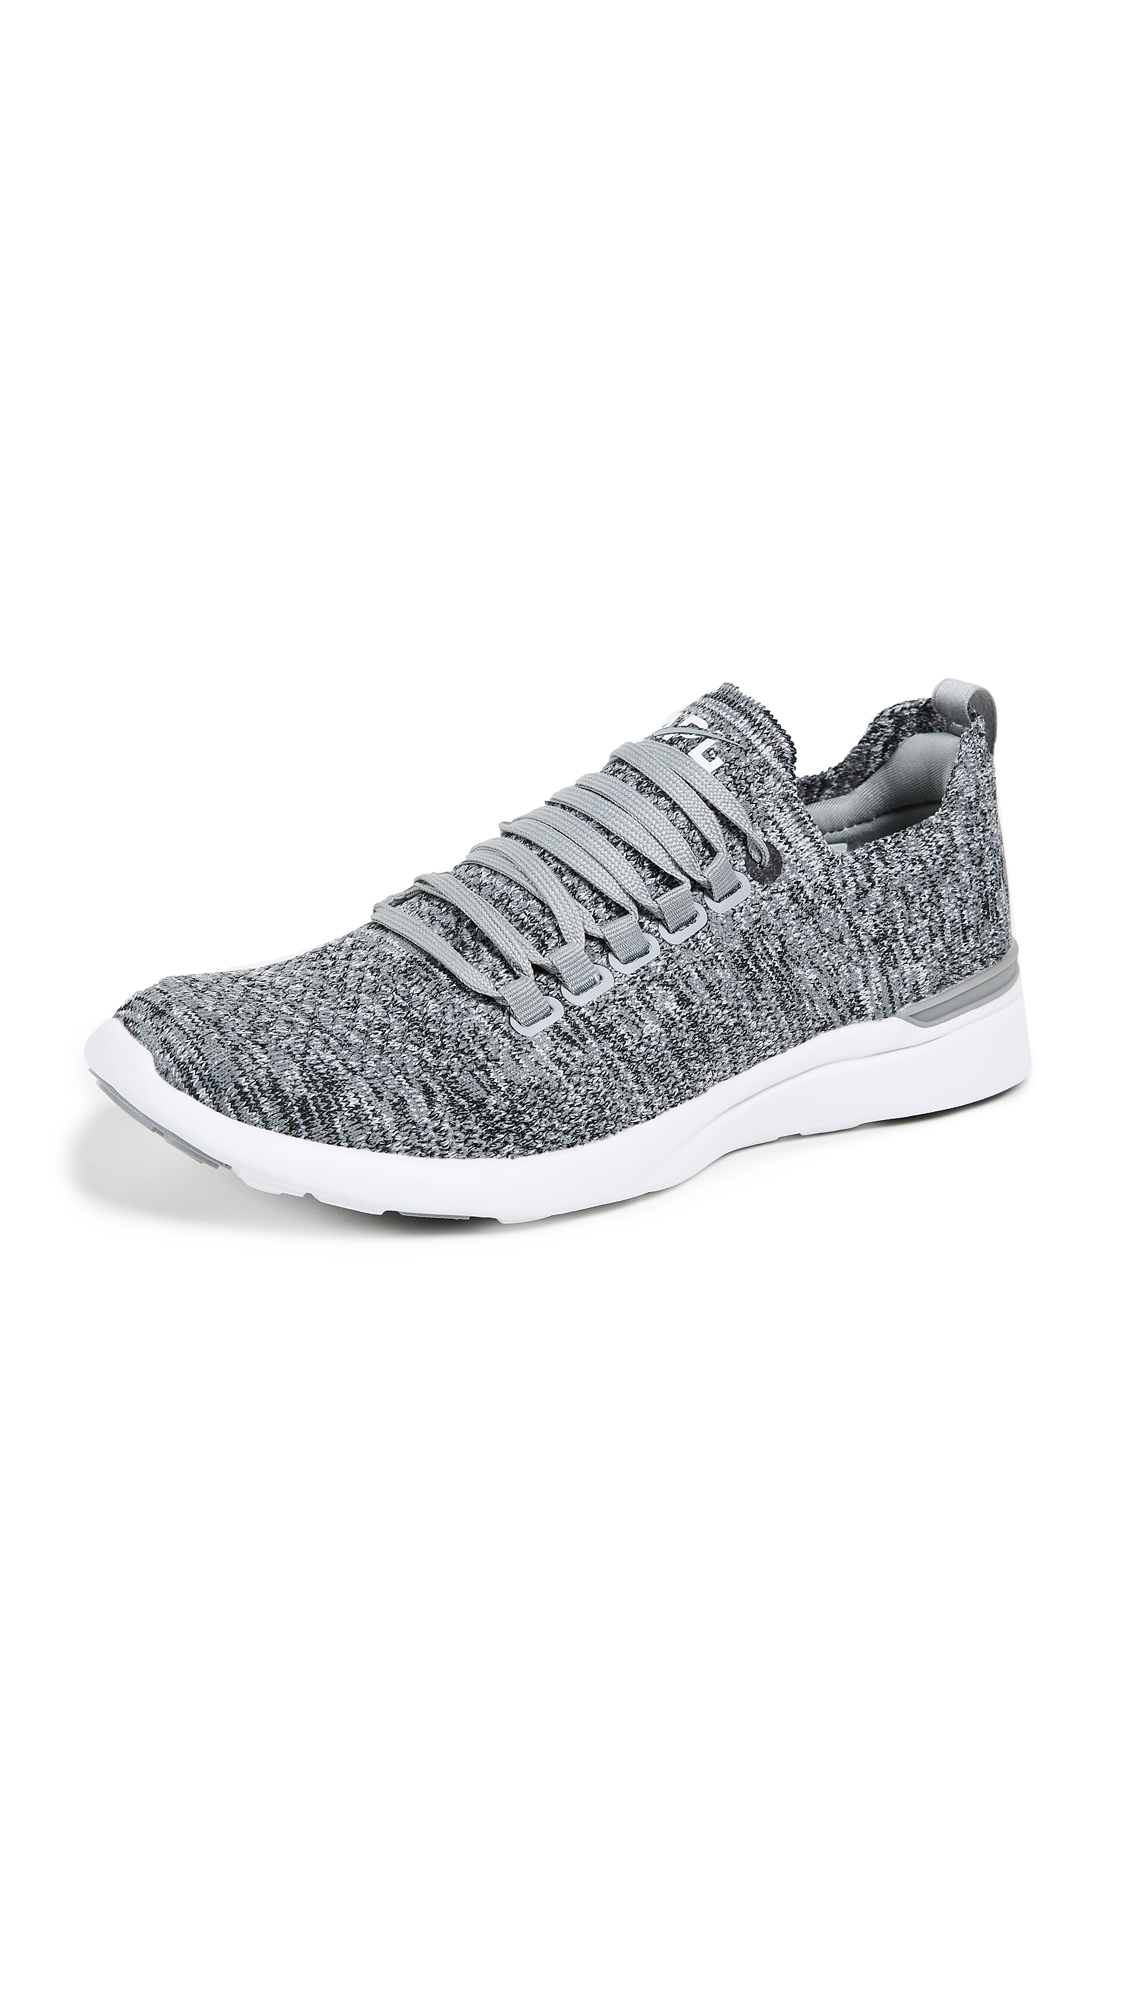 APL: Athletic Propulsion Labs TechLoom Breeze Sneakers - Heather Grey/White